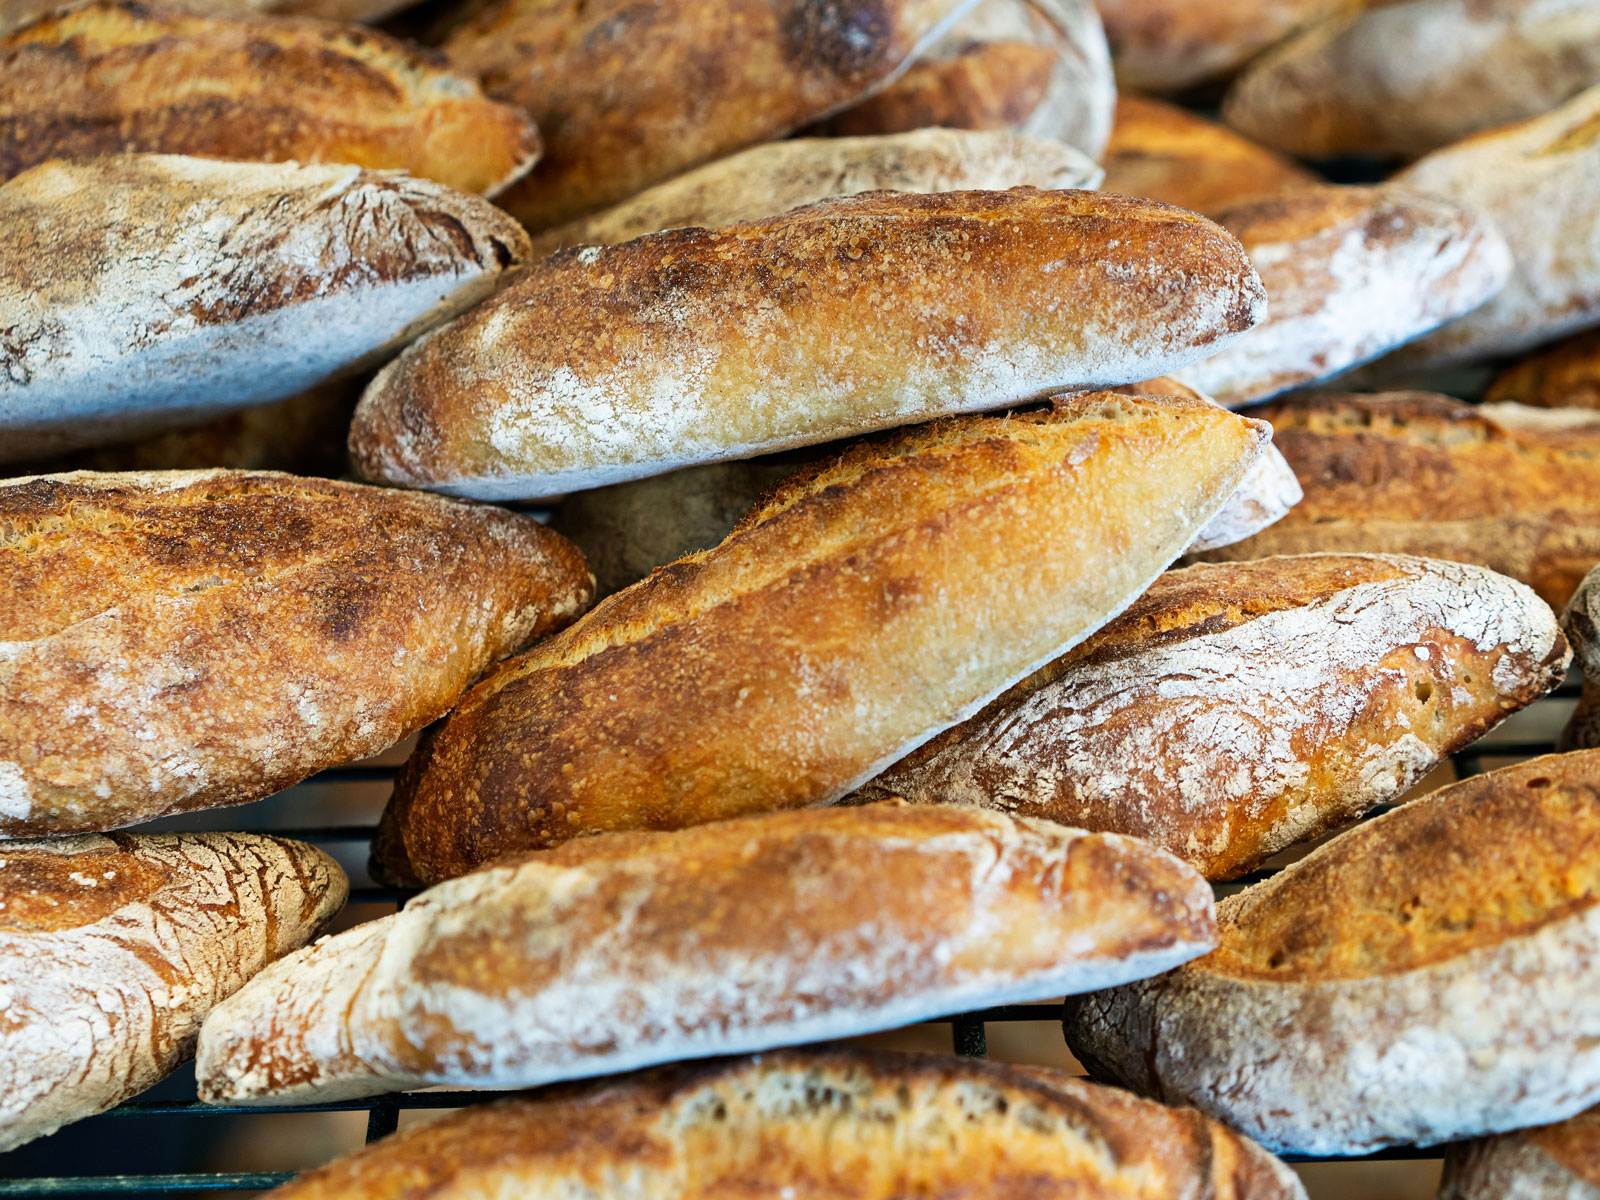 Bread Is So Hot Right Now, According to Facebook